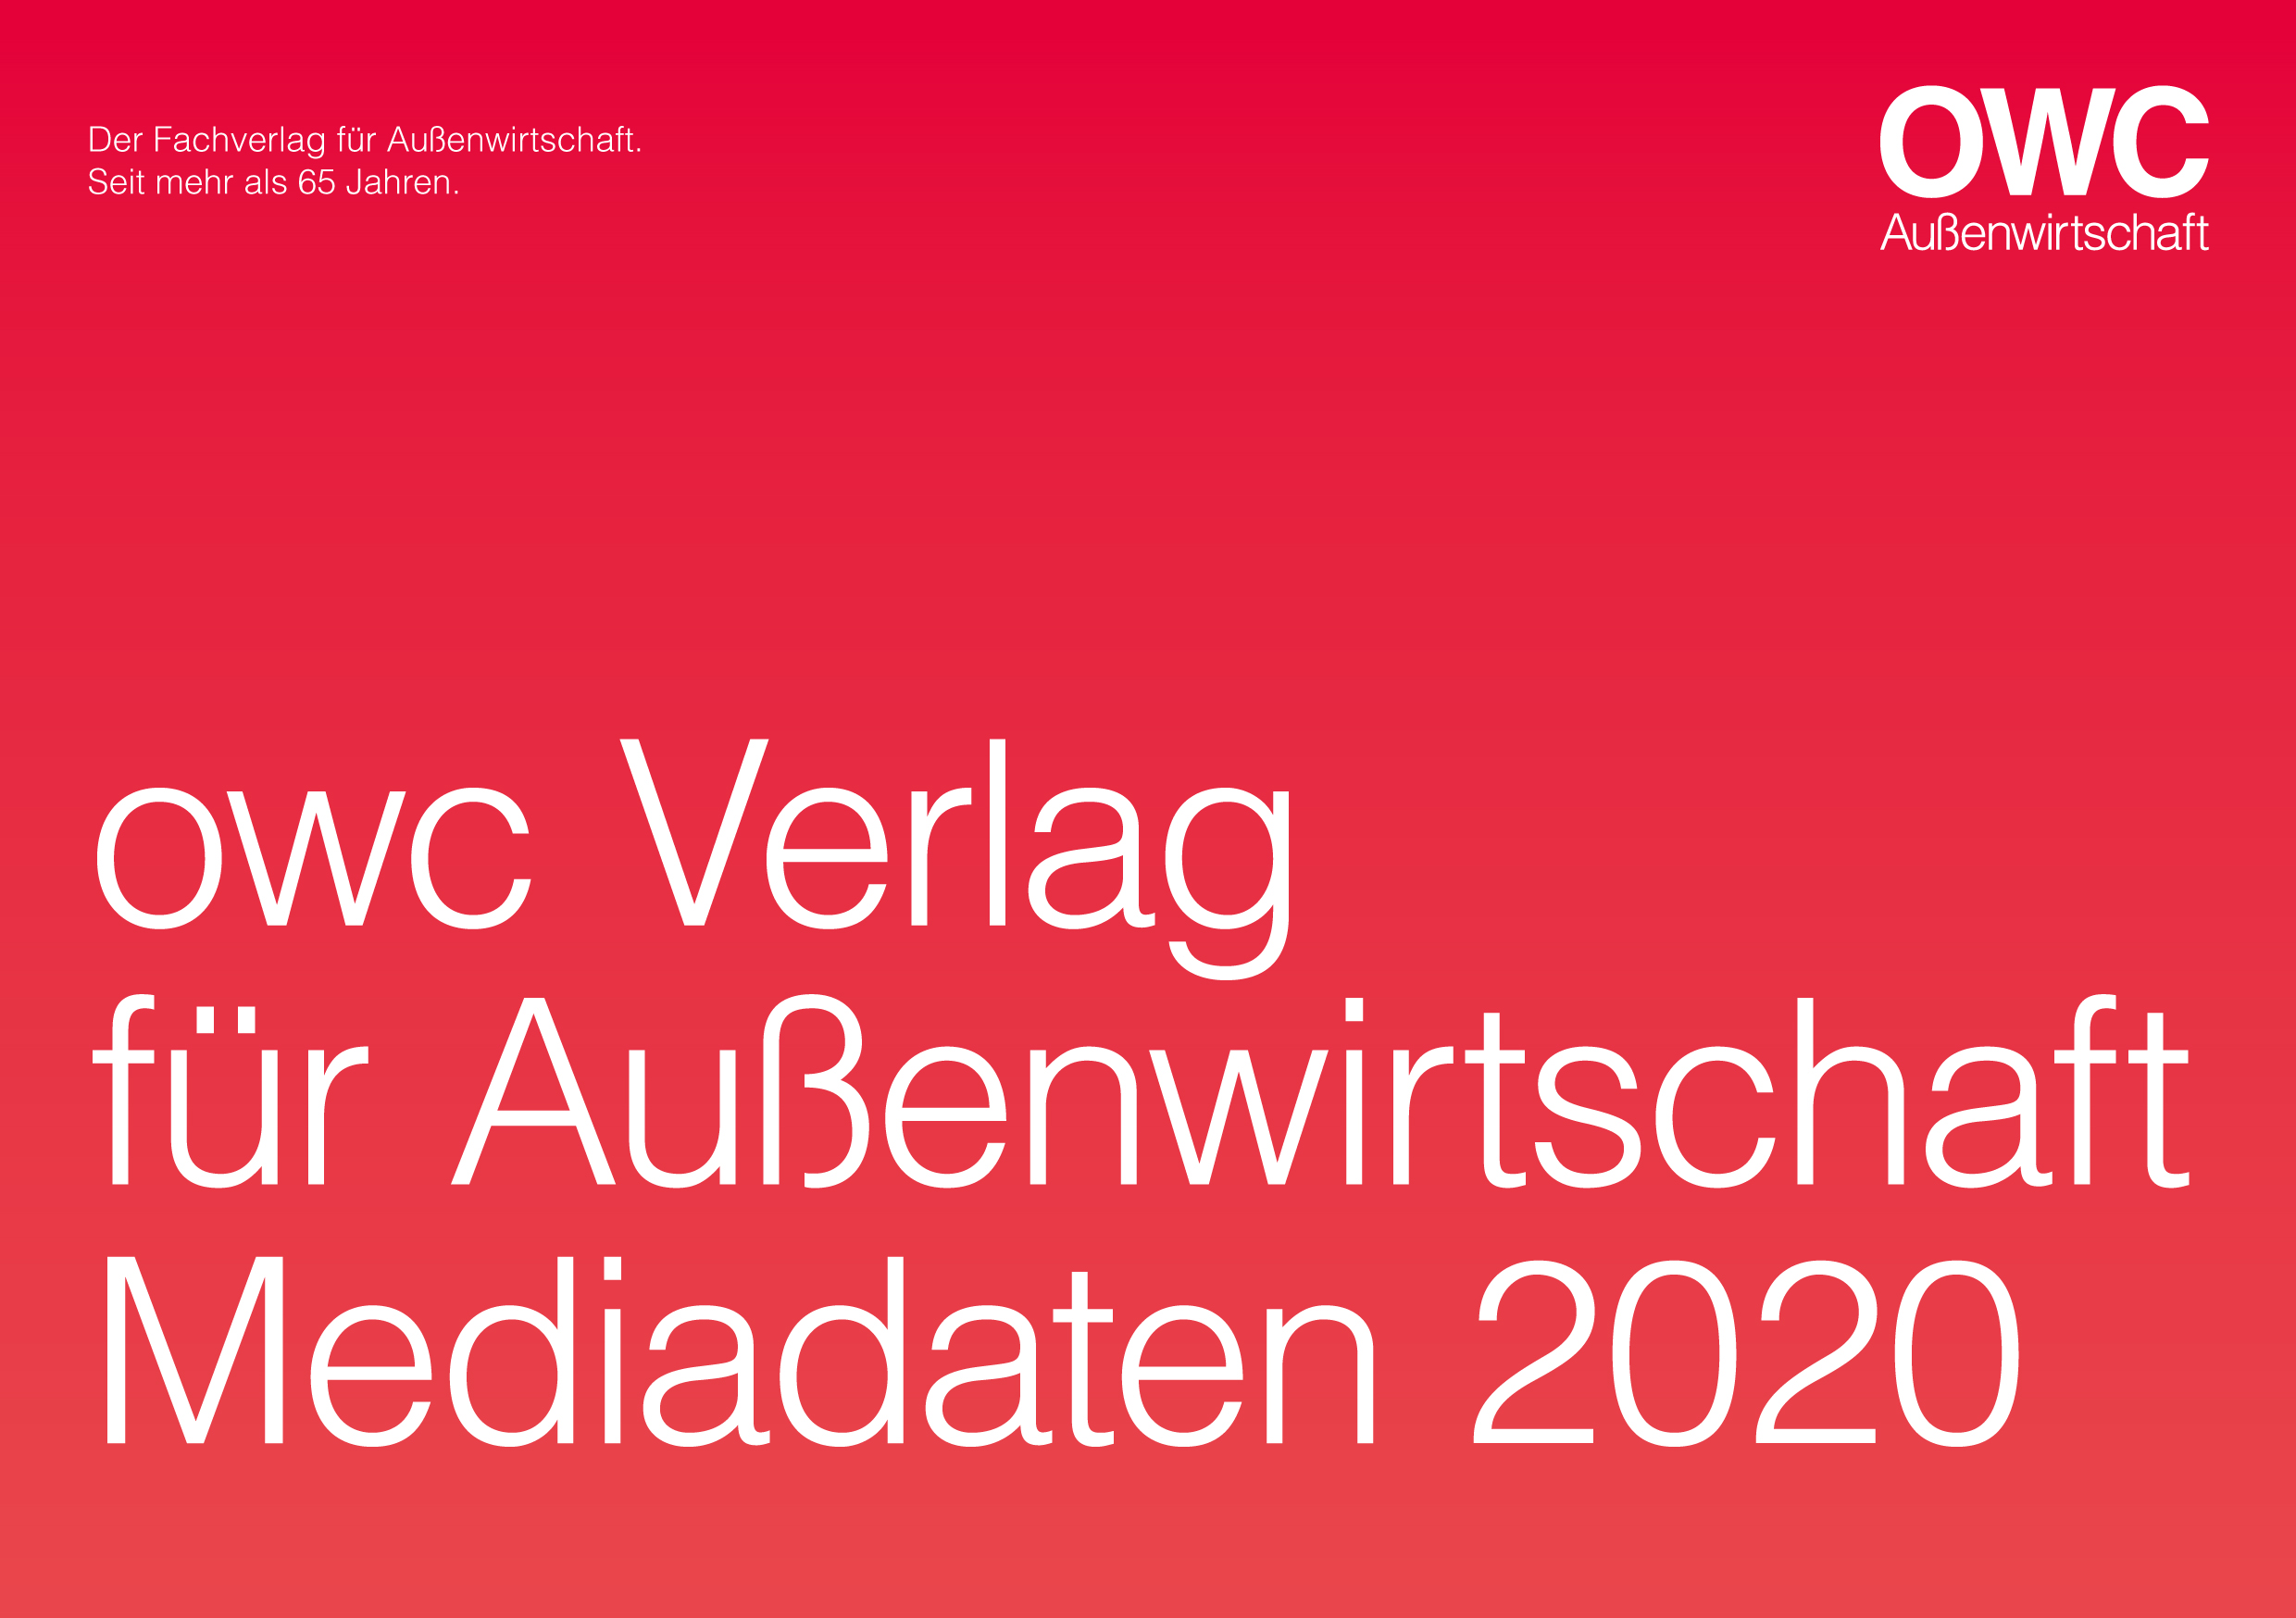 https://owc.de/wp-content/uploads/2020/04/cover1.jpg